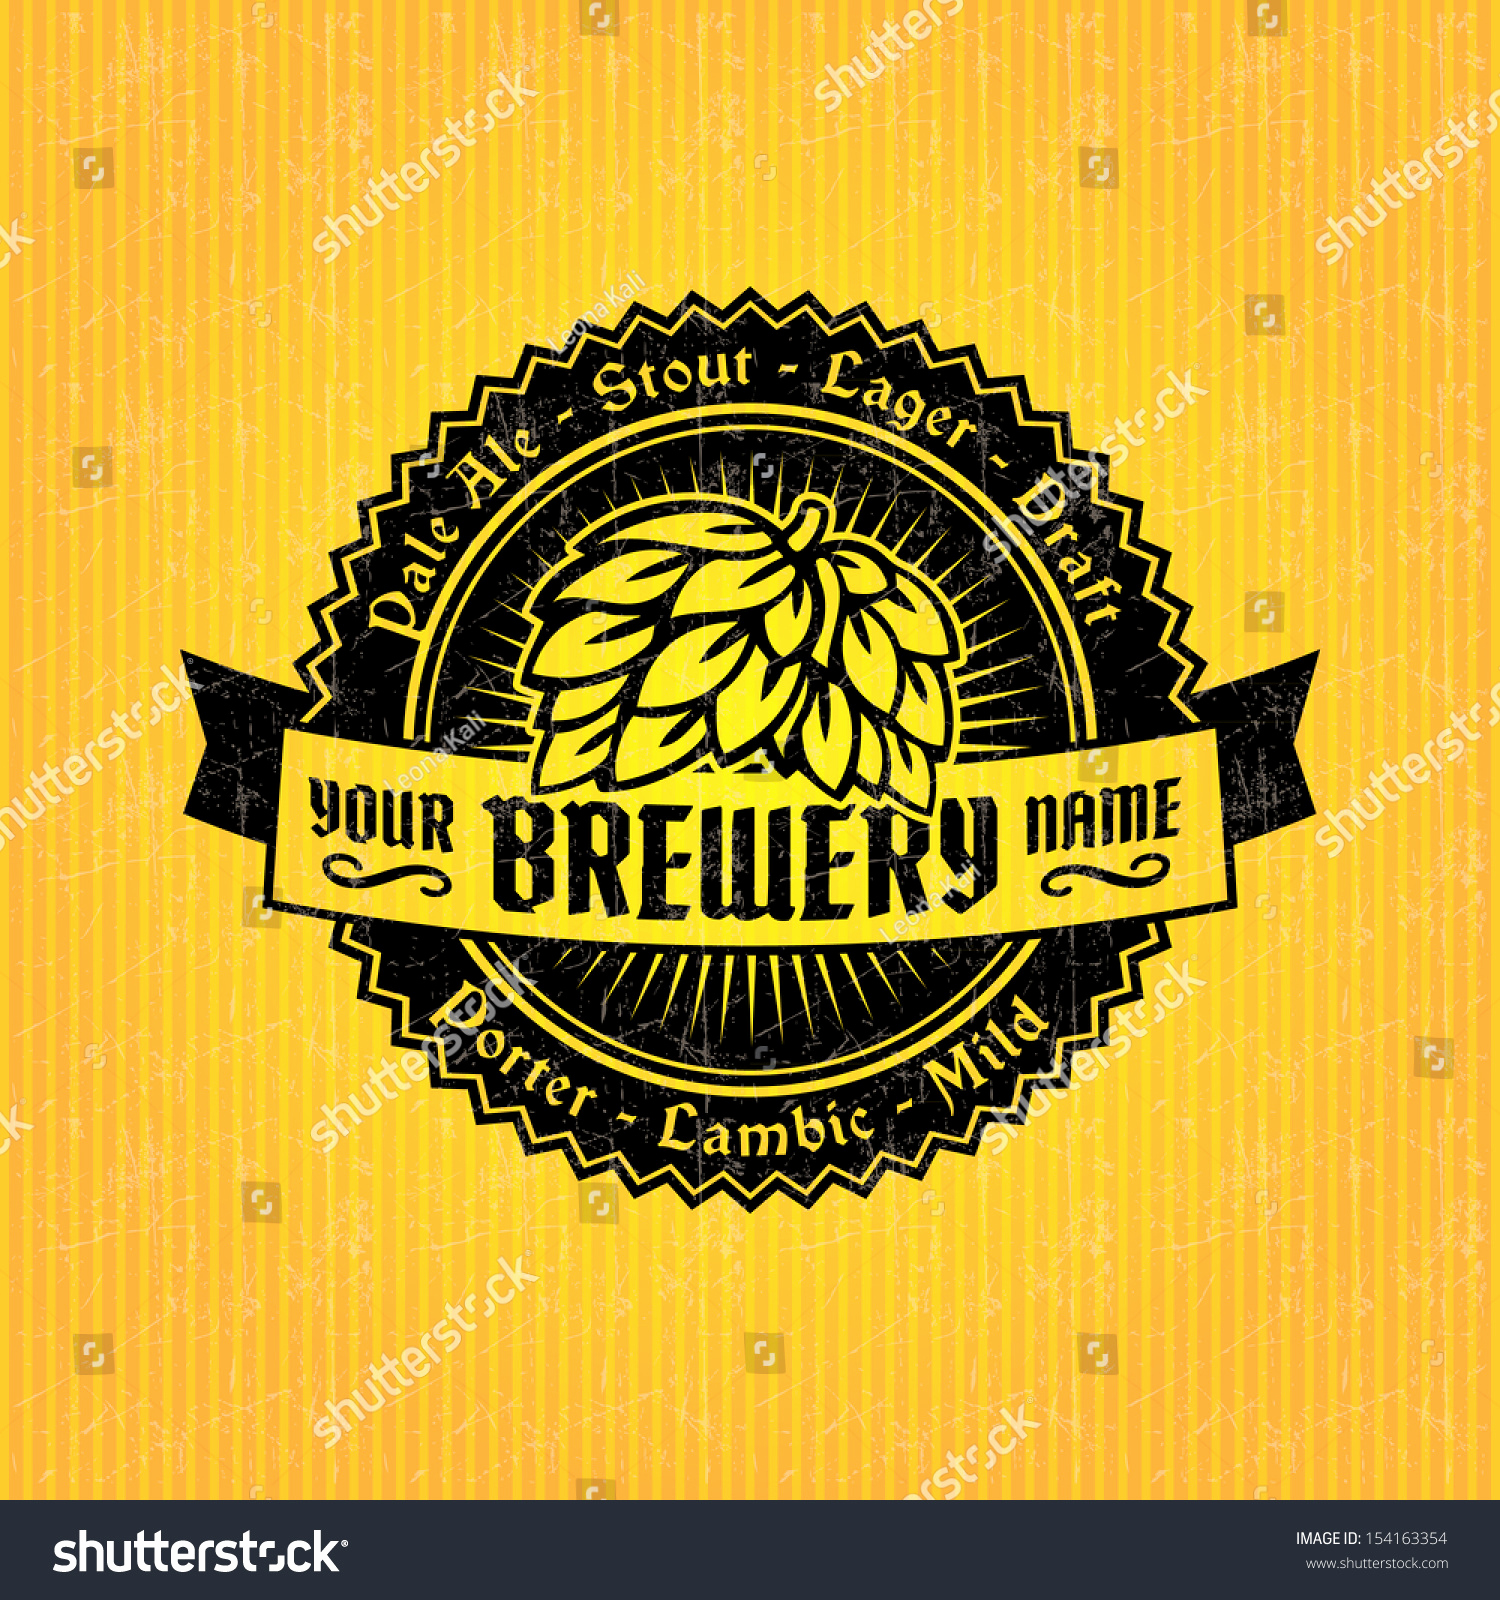 Beer Label Design Template New Beer Label Design Template Stock Vector